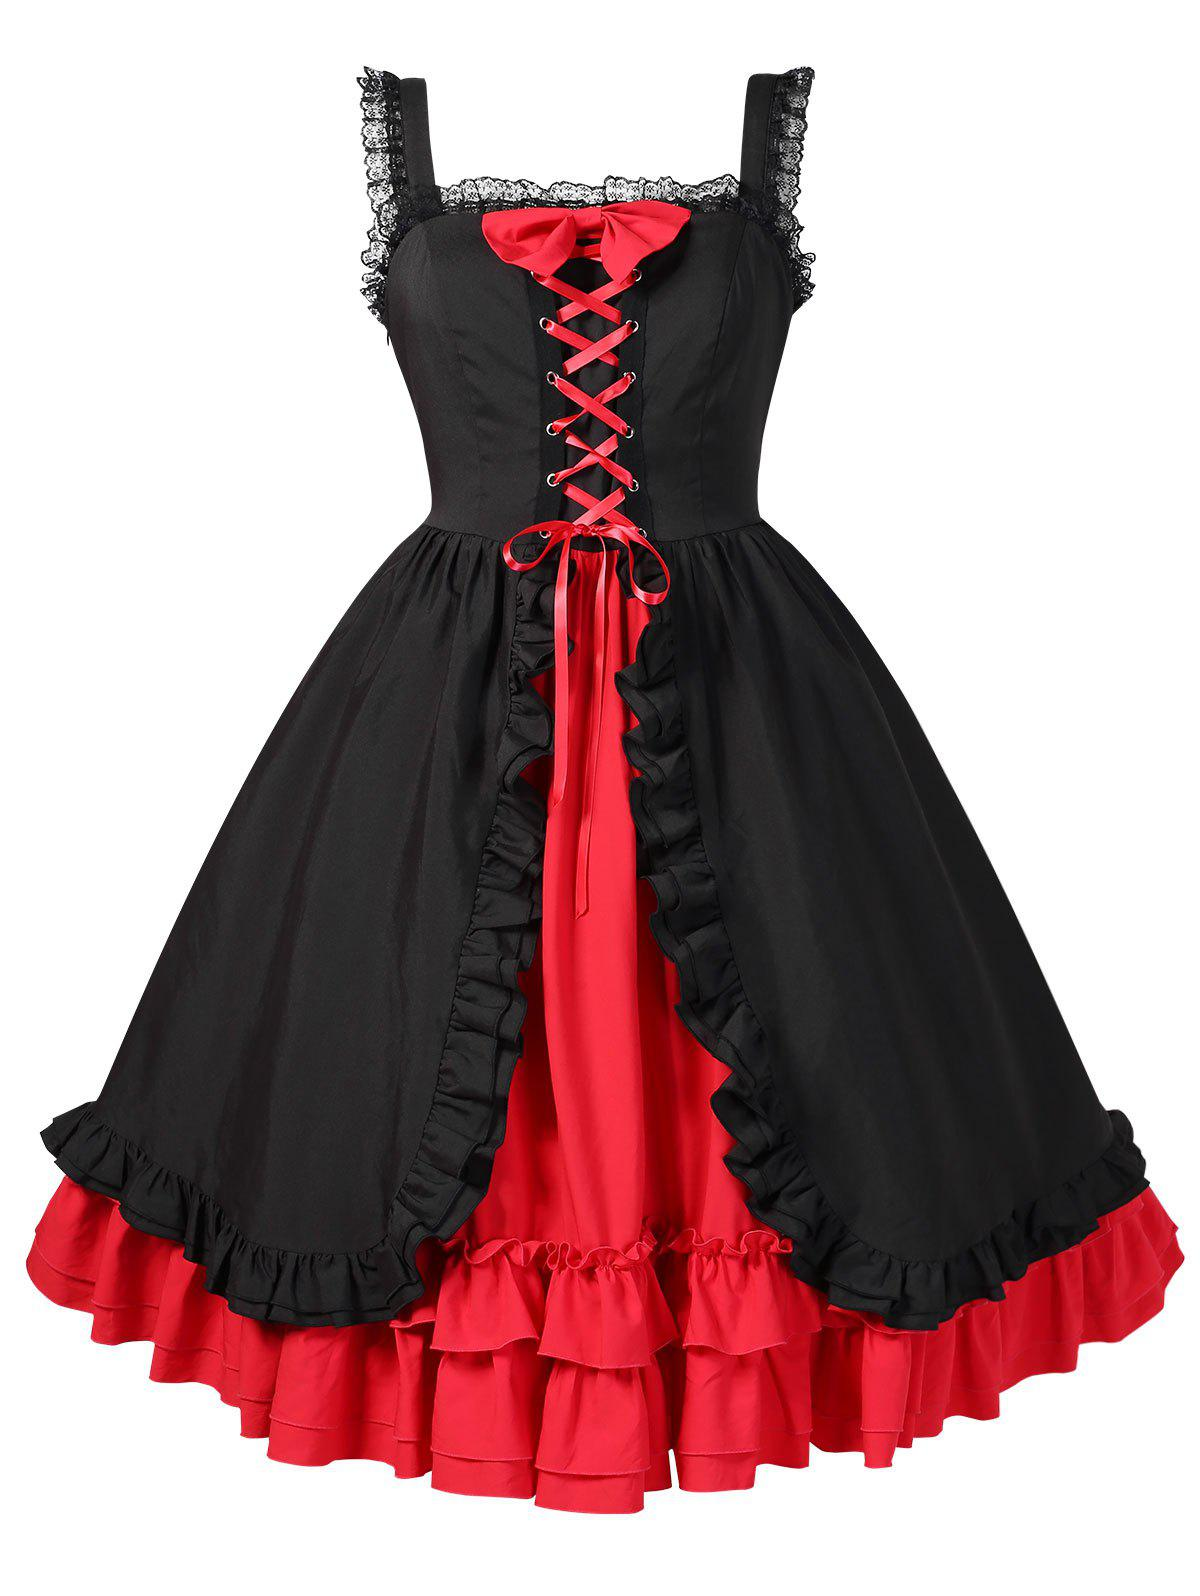 Fashion Plus Size Halloween Lace Up Ruffled High Waist Dress